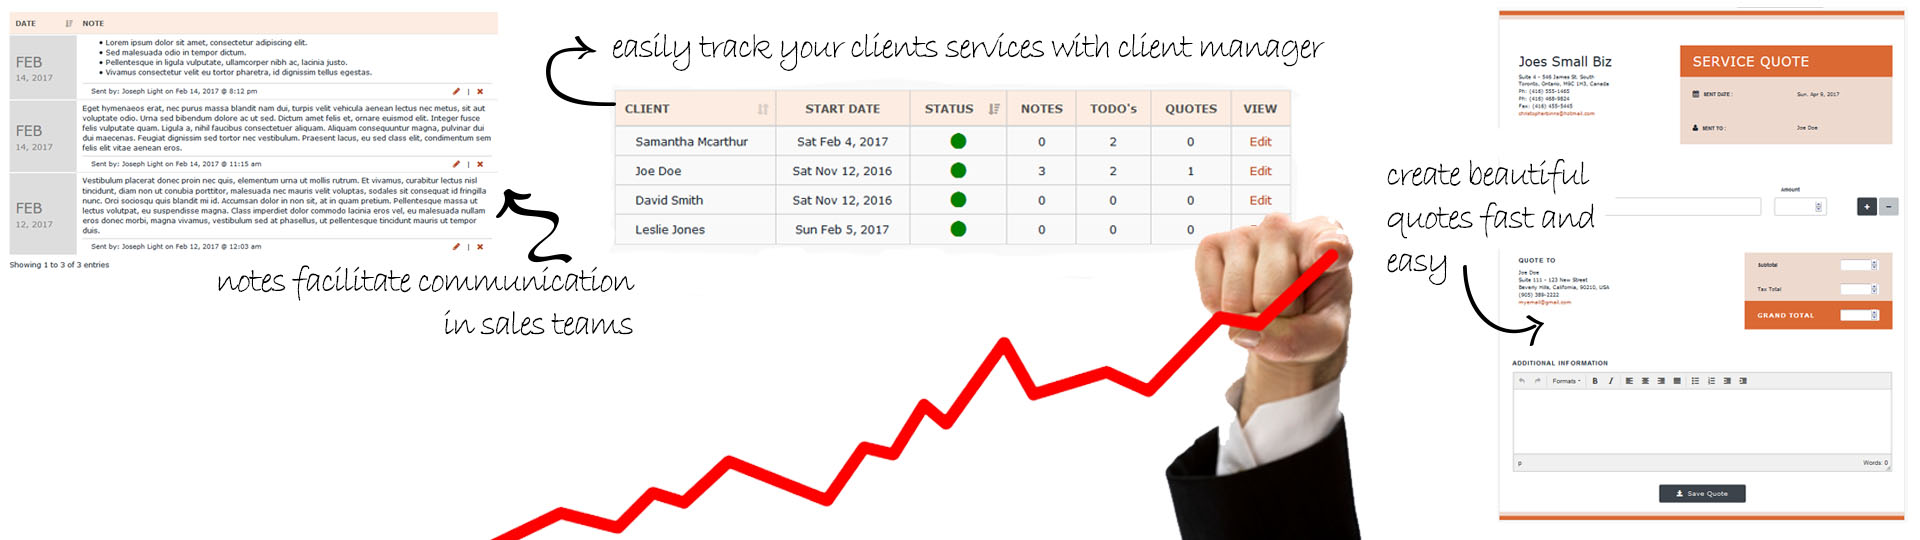 Client Relations Management for Tutor Agencies